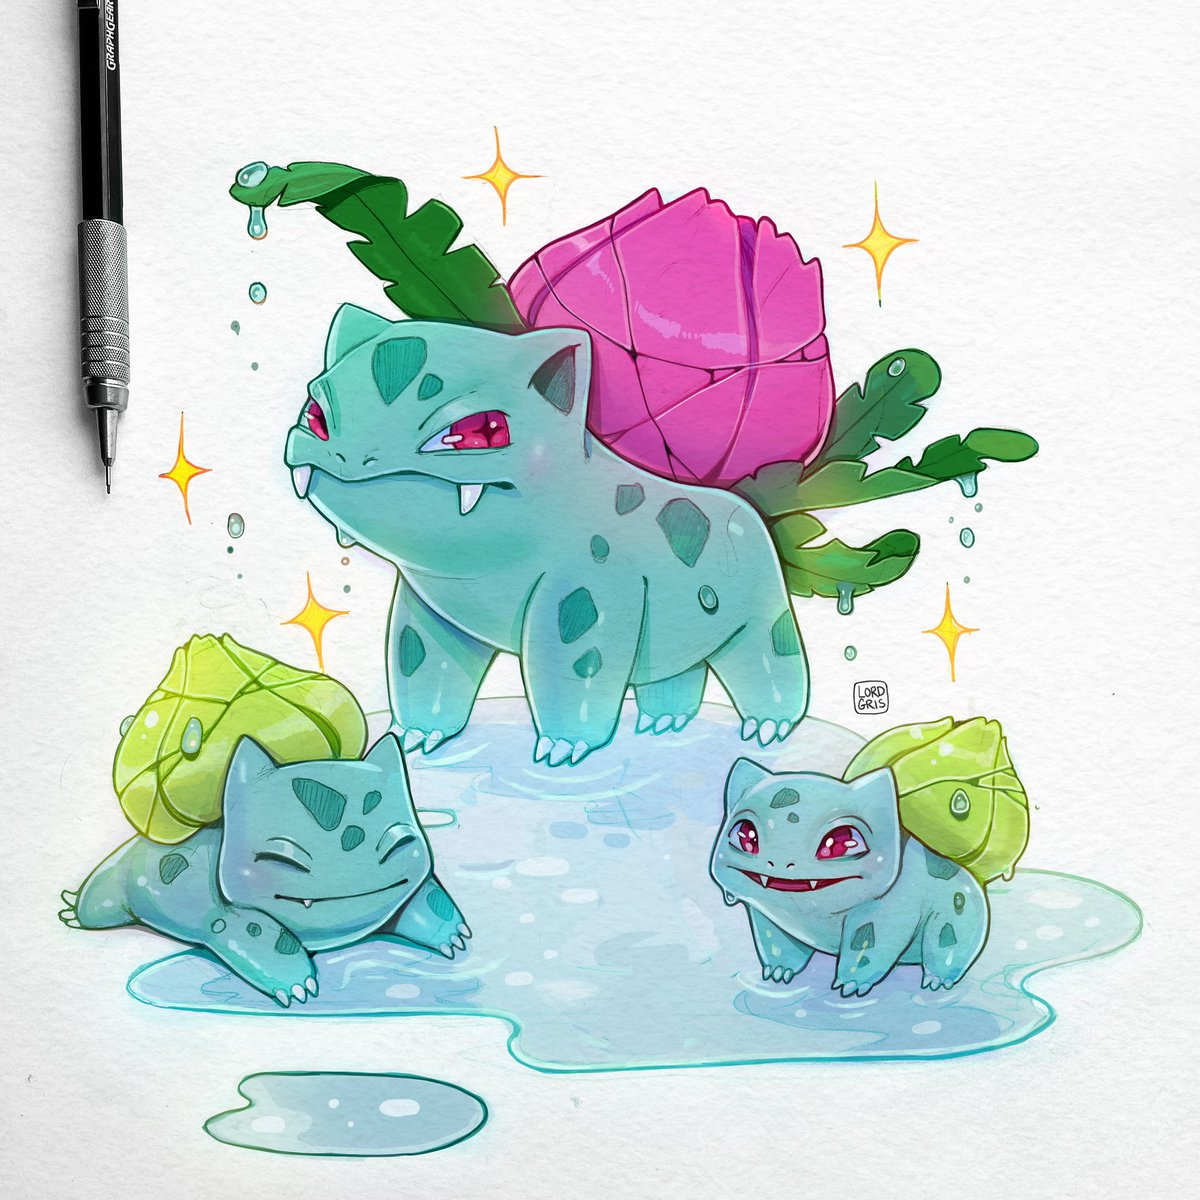 Who is your favorite Pokémon and why is it bulbasaur #pokemon #bulbasaur